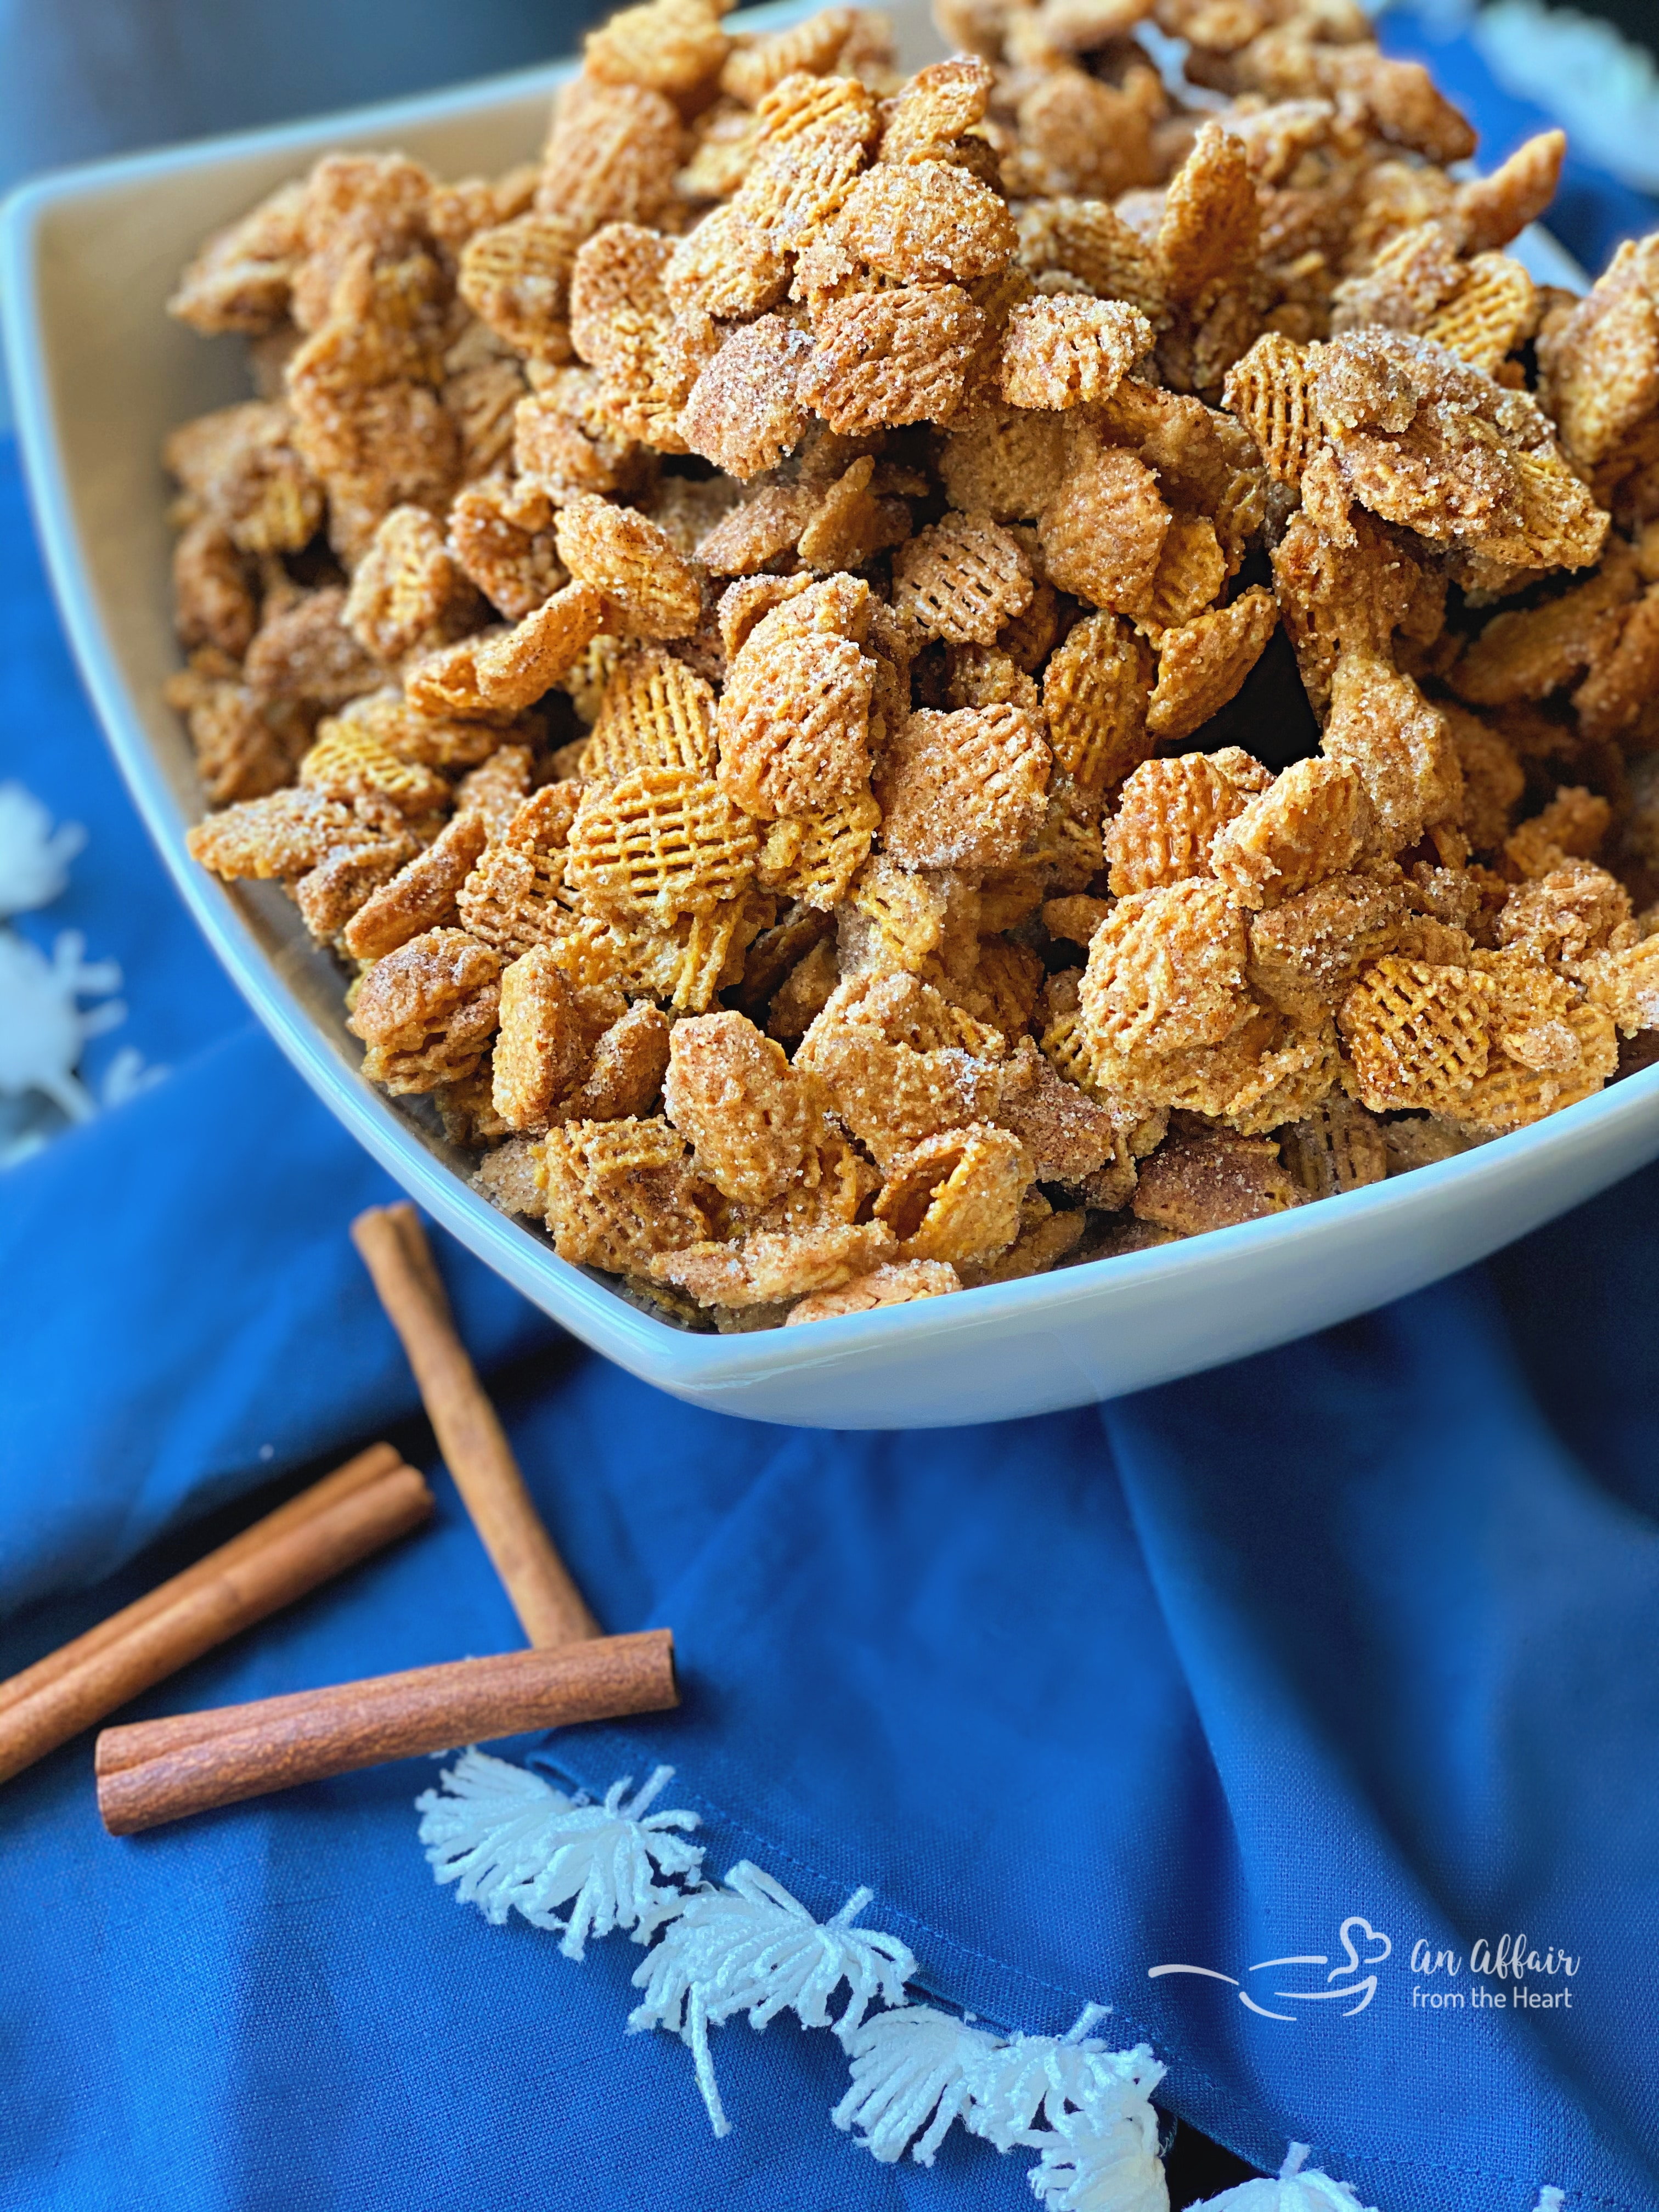 Caramel Churro Chex Mix The Sweet Party Mix Your Life Is Missing